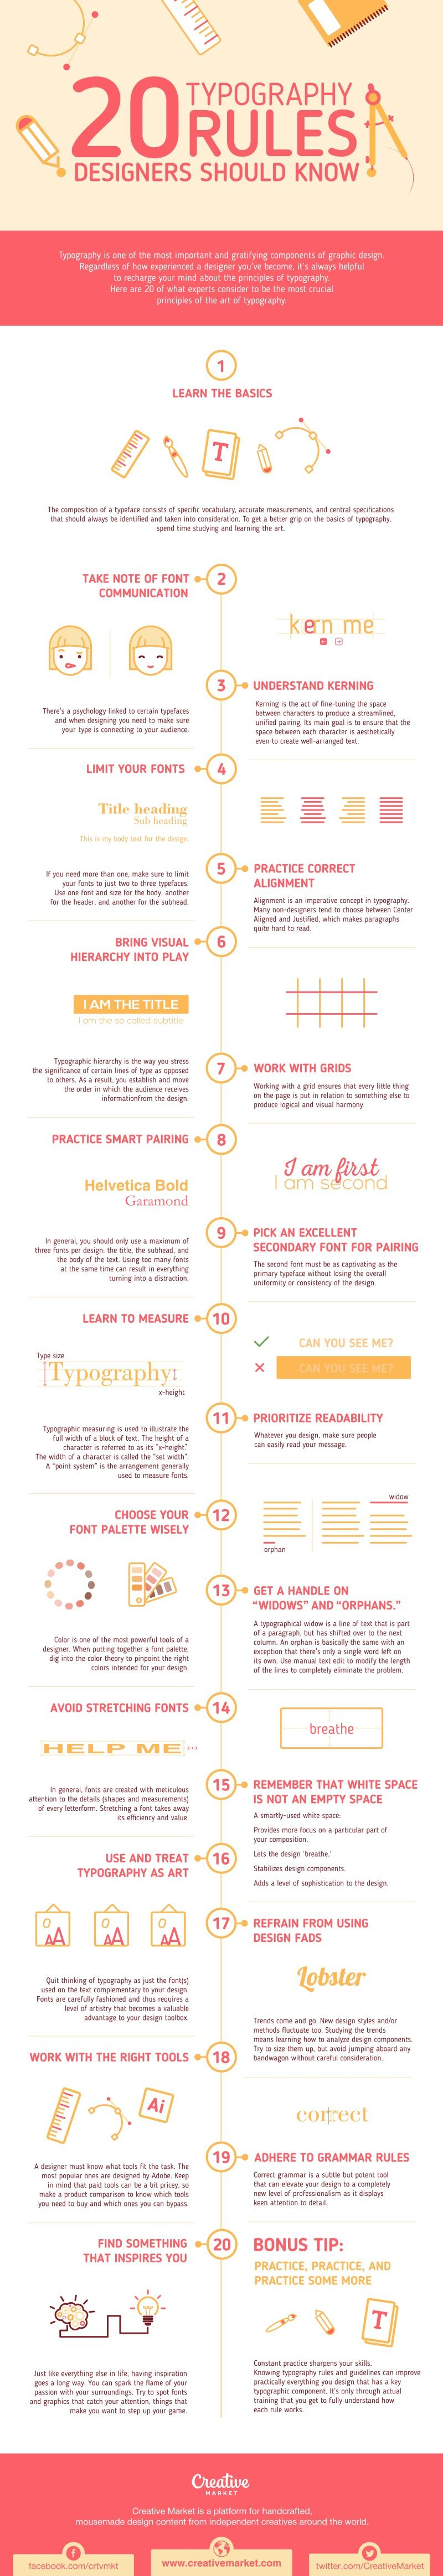 20 Typography Rules Every Designer Should Know #Infographic